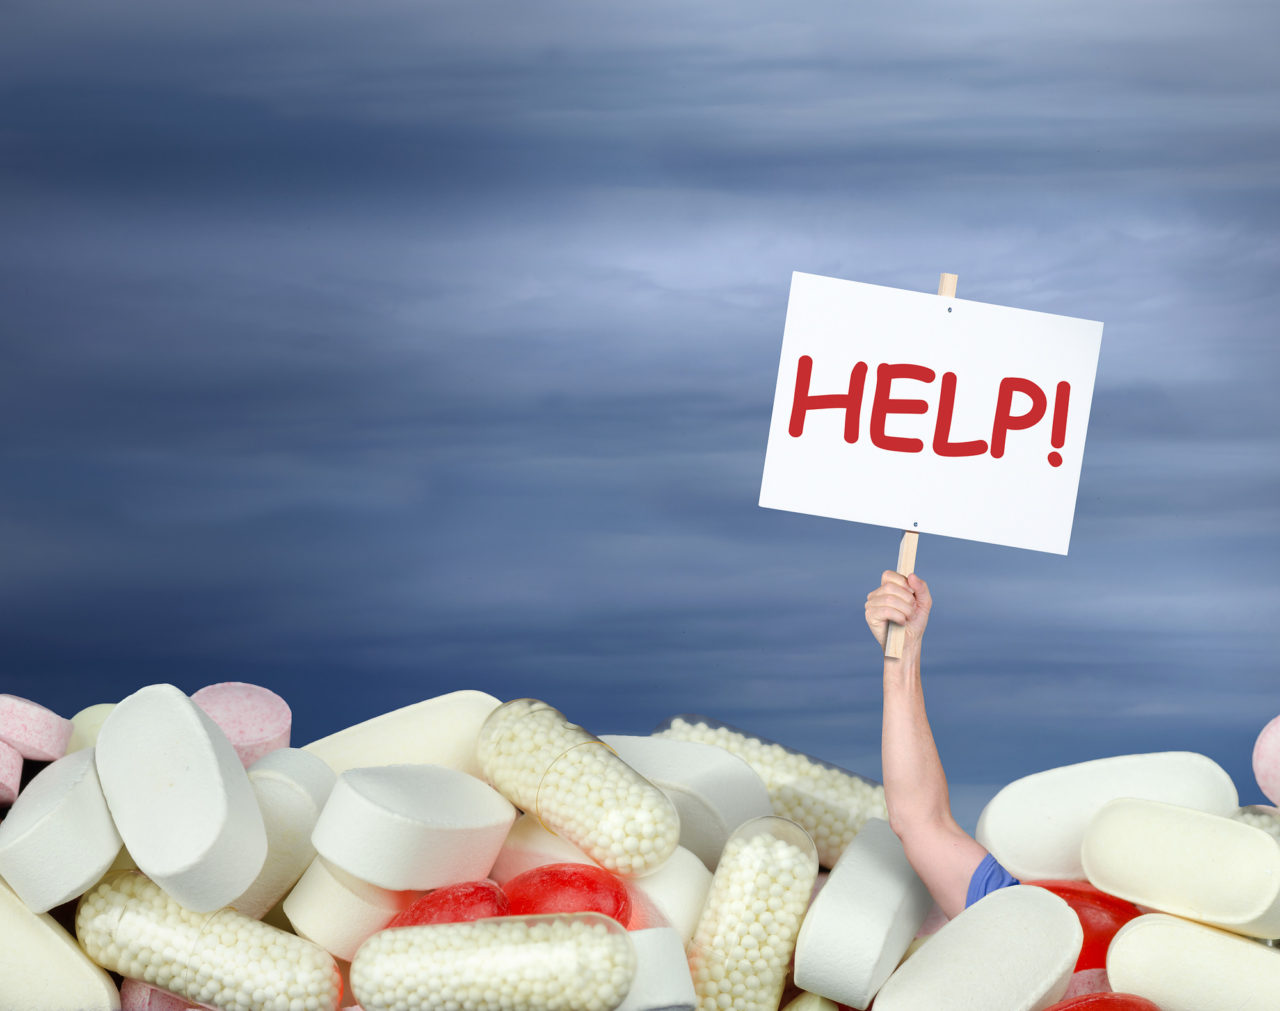 A huge pile of various pills with a man's hand coming out of the pills holding a sign that says HELP!